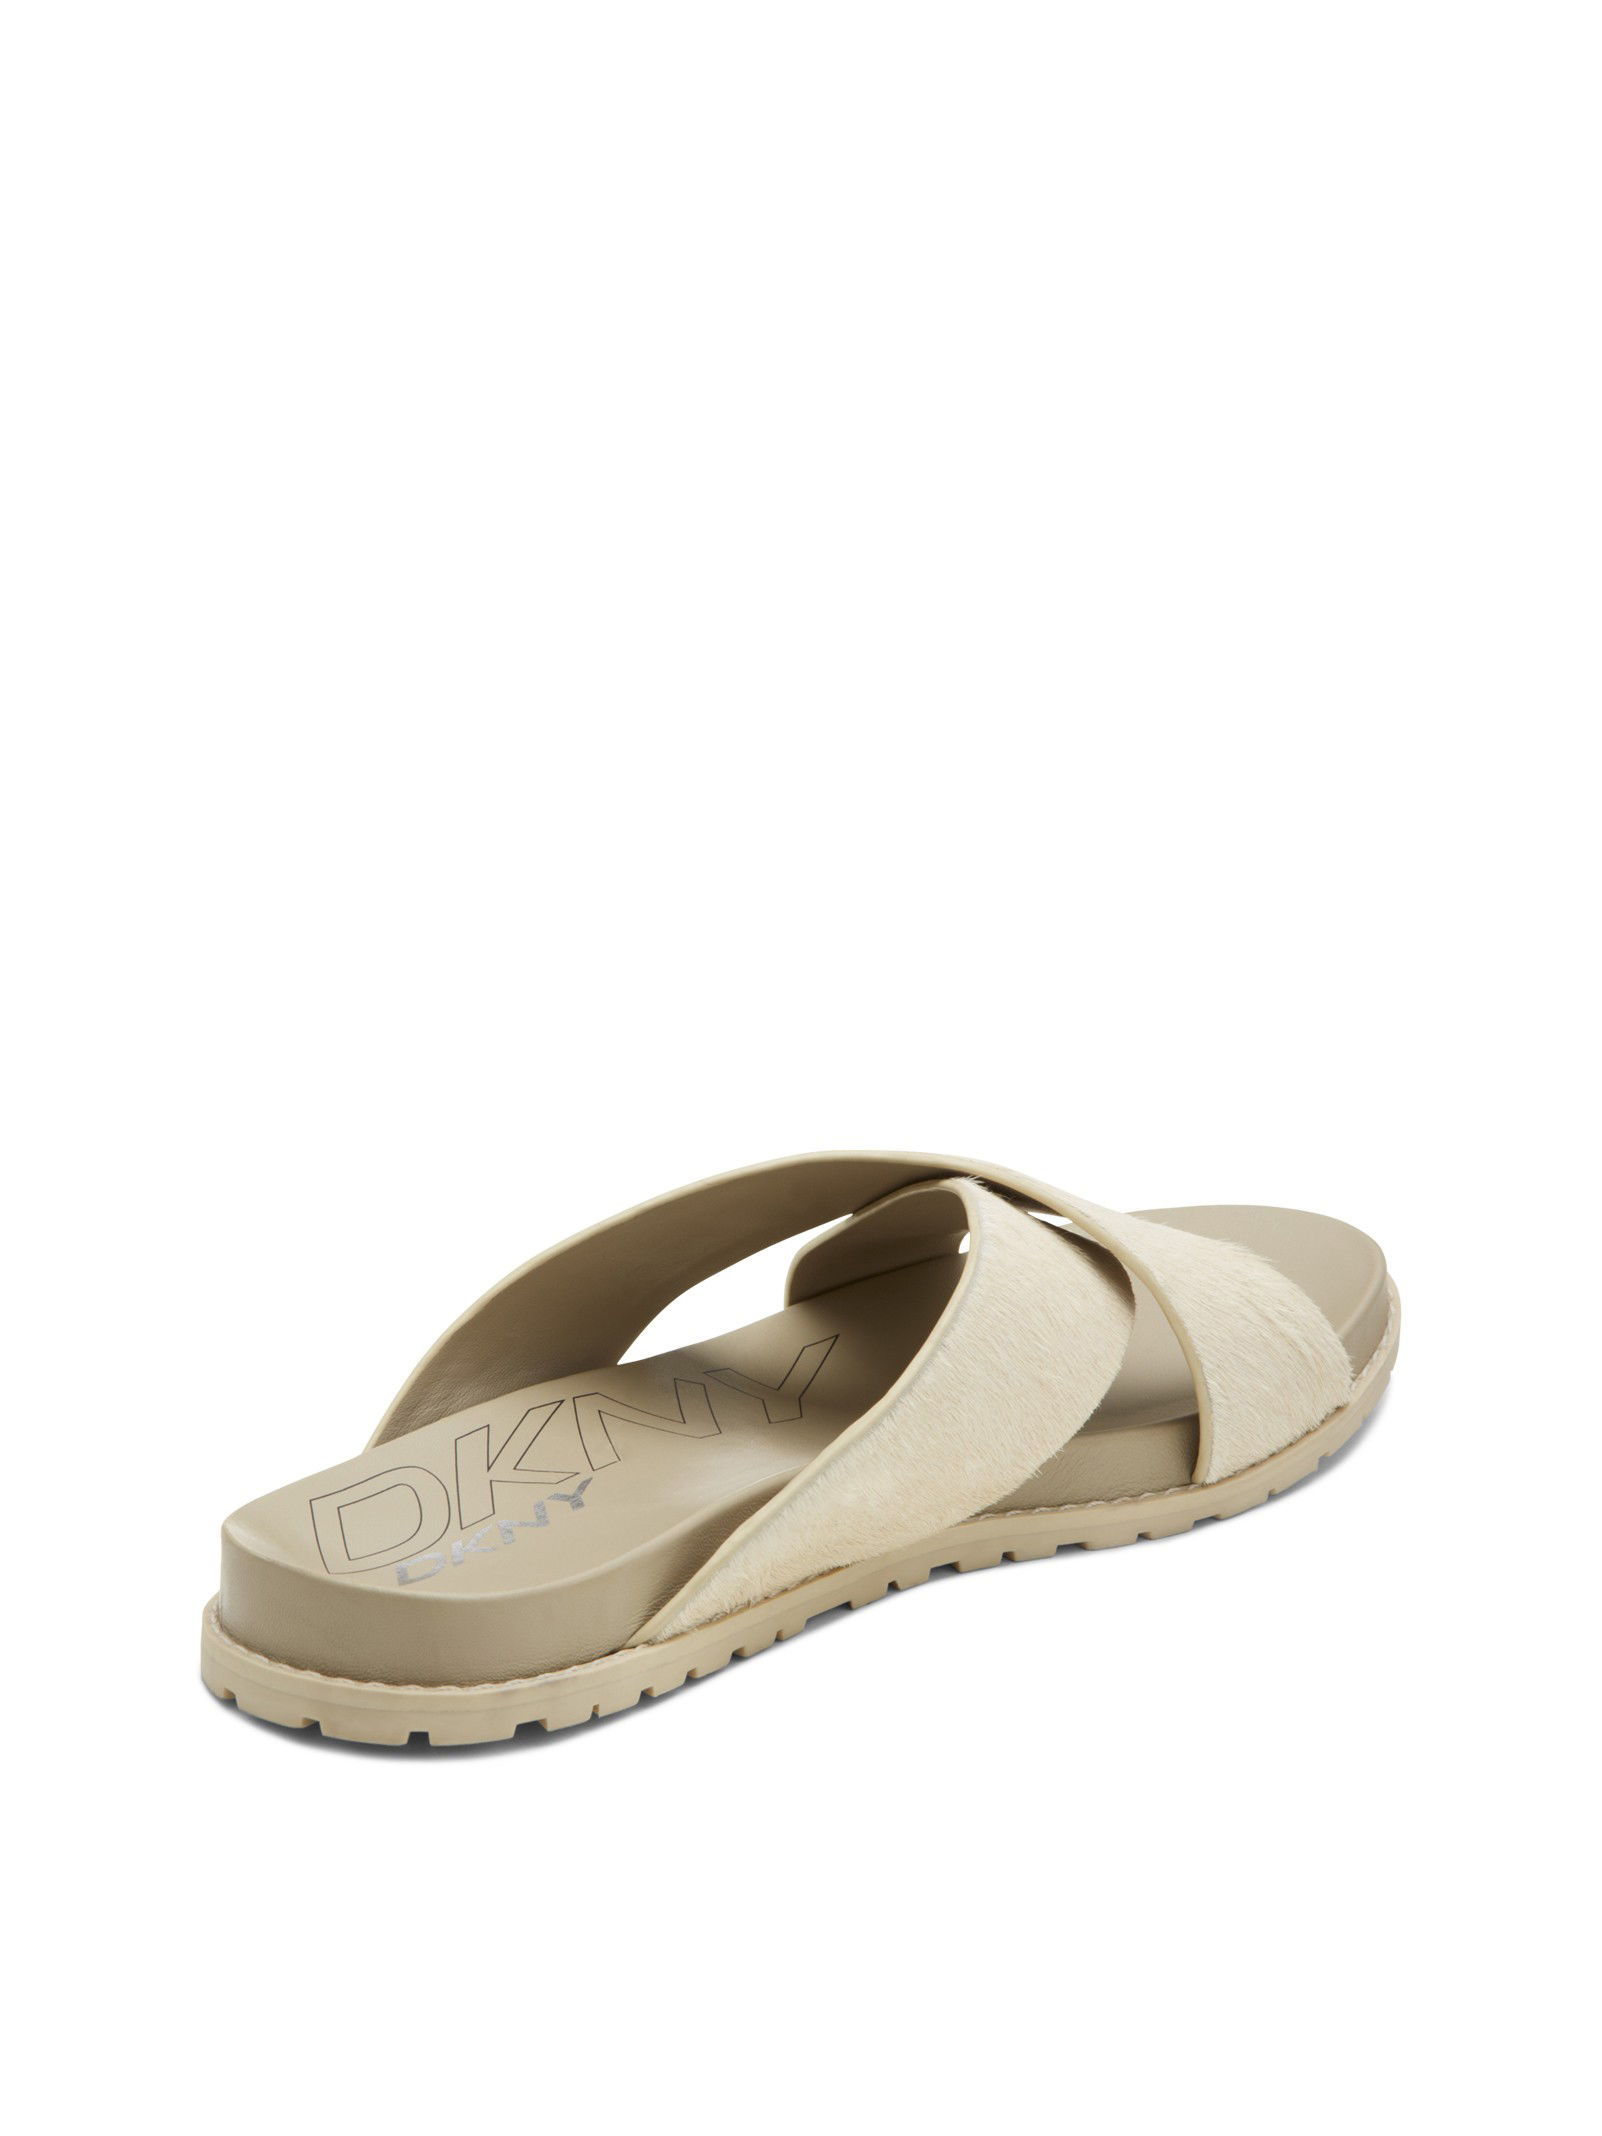 dkny sandals 28 images lyst dkny shoreline sandals in